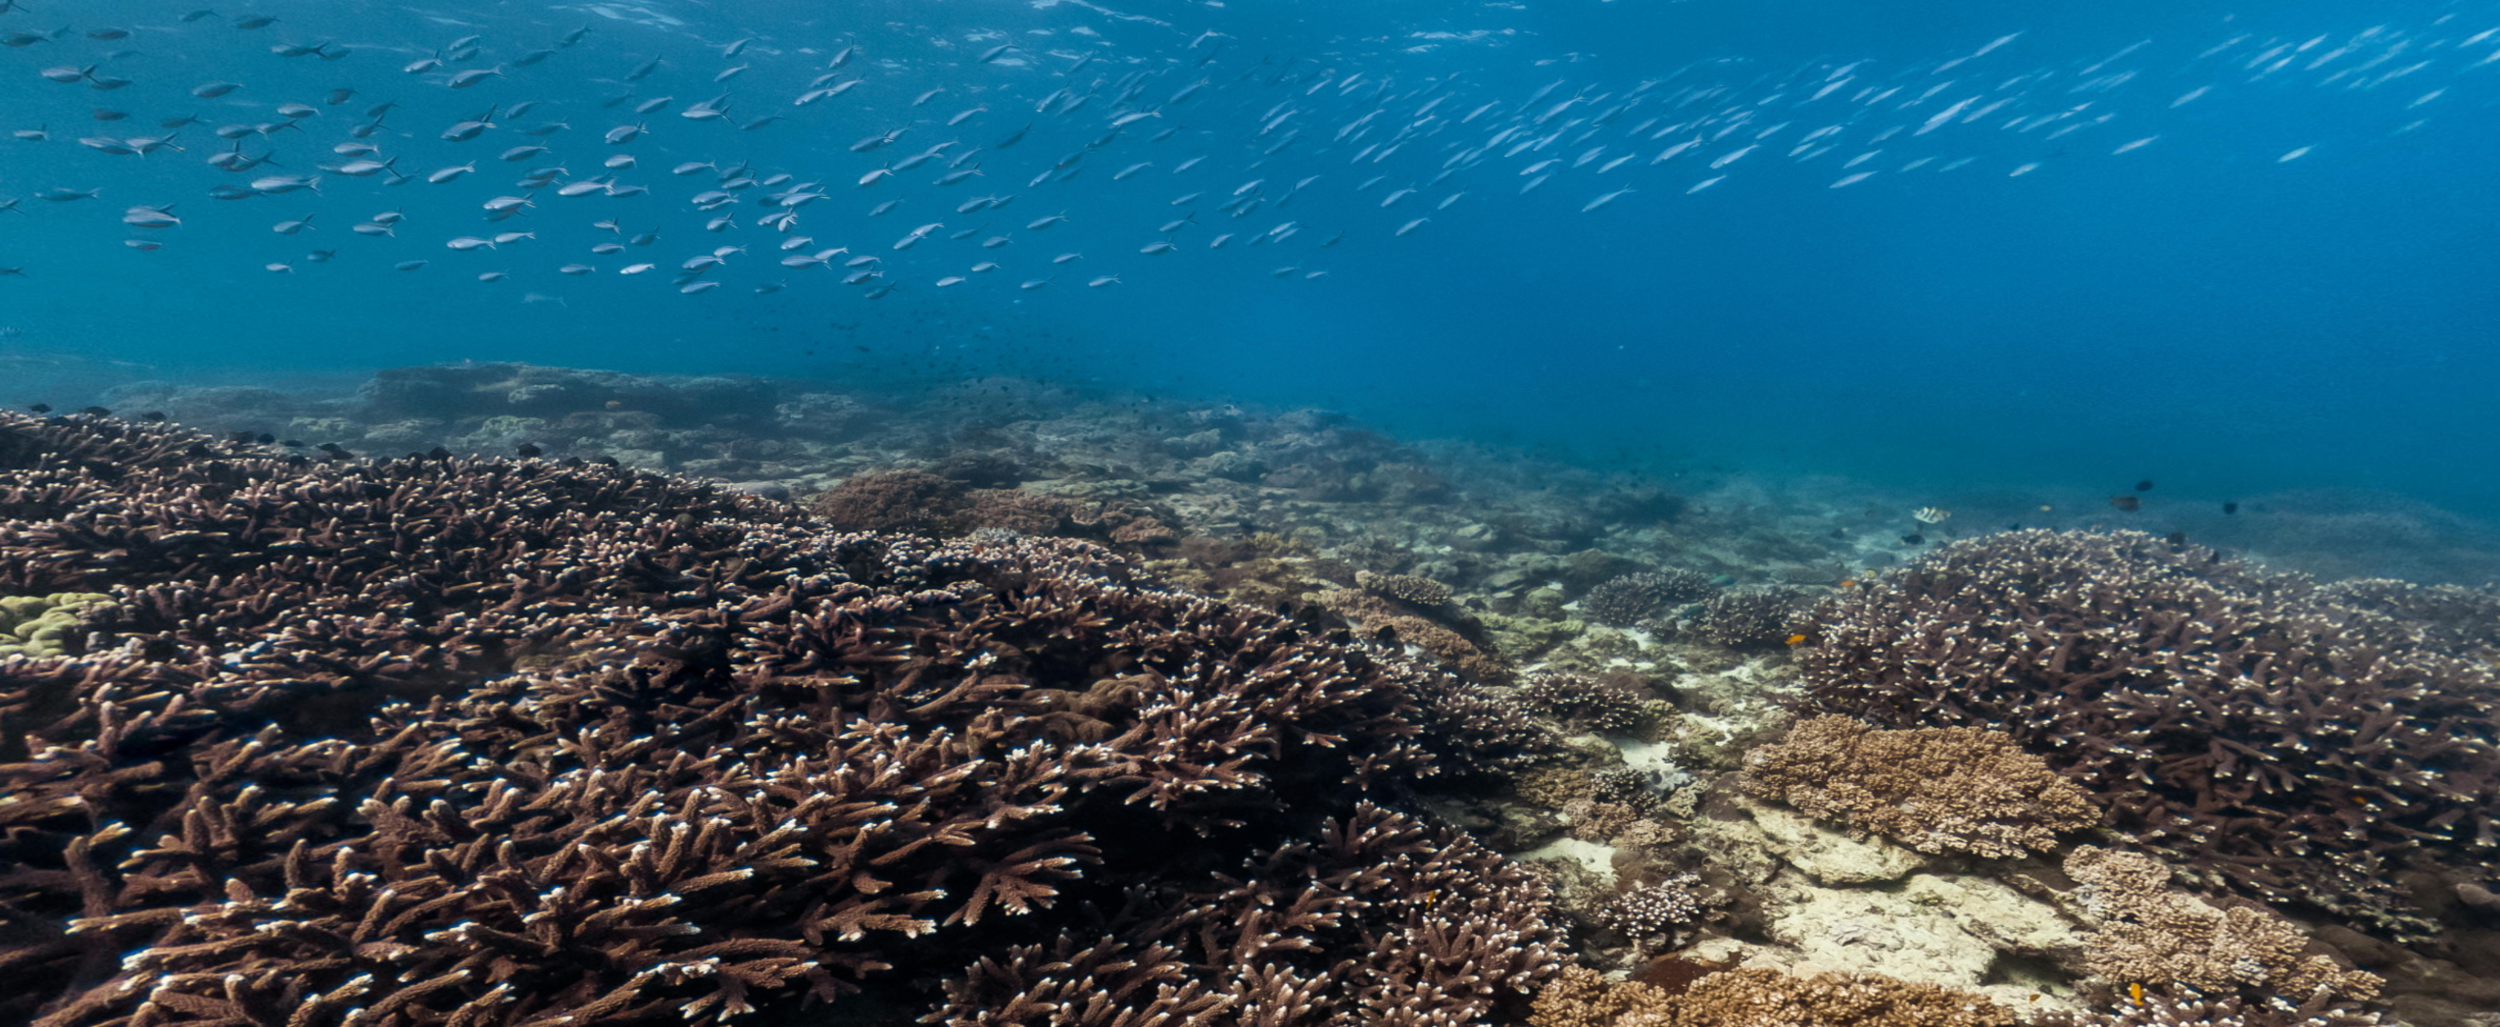 Jump in for a virtual dive - On Flinders Reef